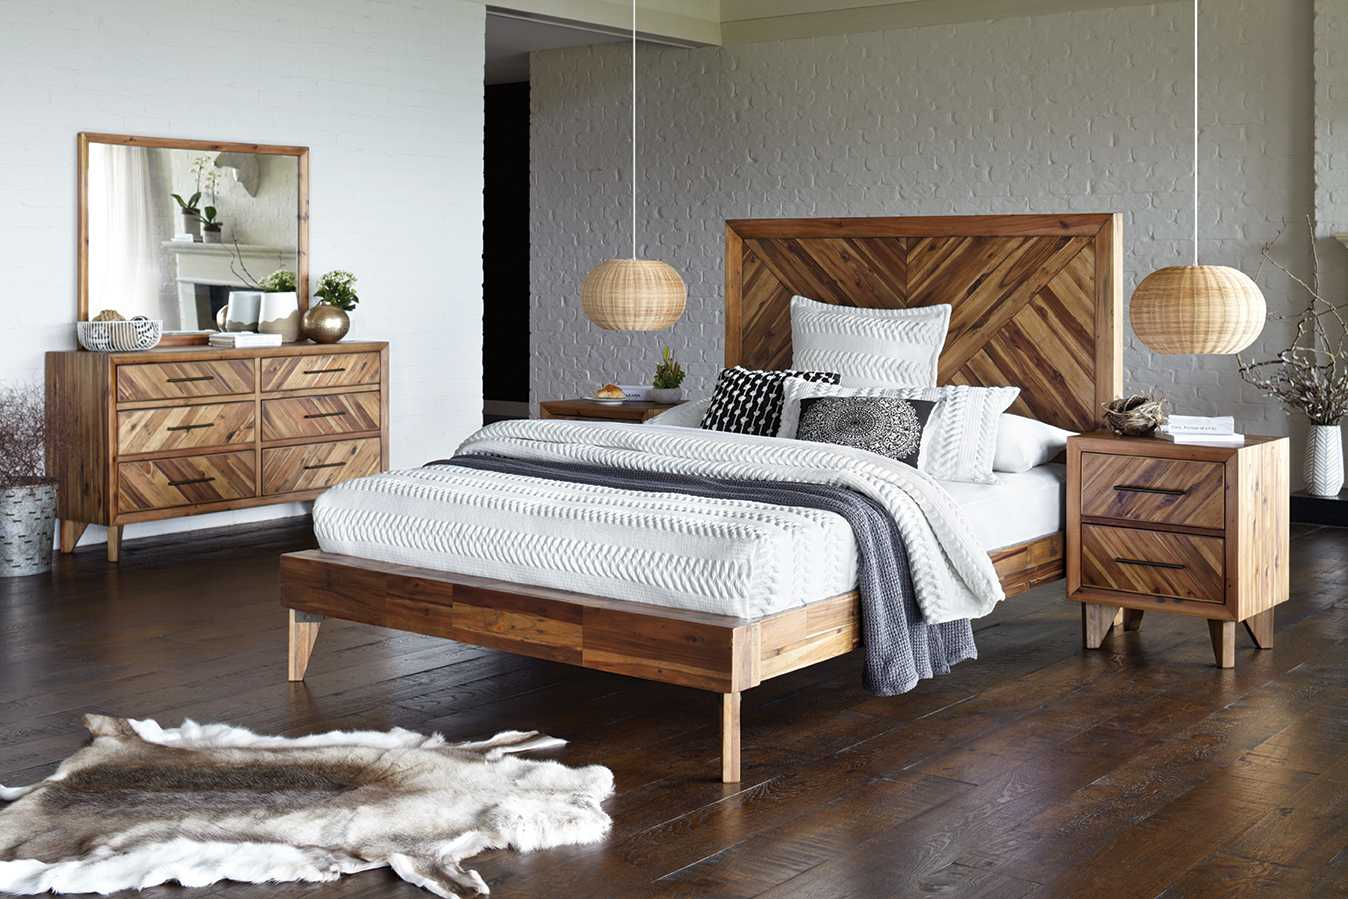 Bedroom Furniture in Bedding Harvey Norman. Bedroom Furniture   Beds  Bed  Mirror  Lighting   Harvey Norman